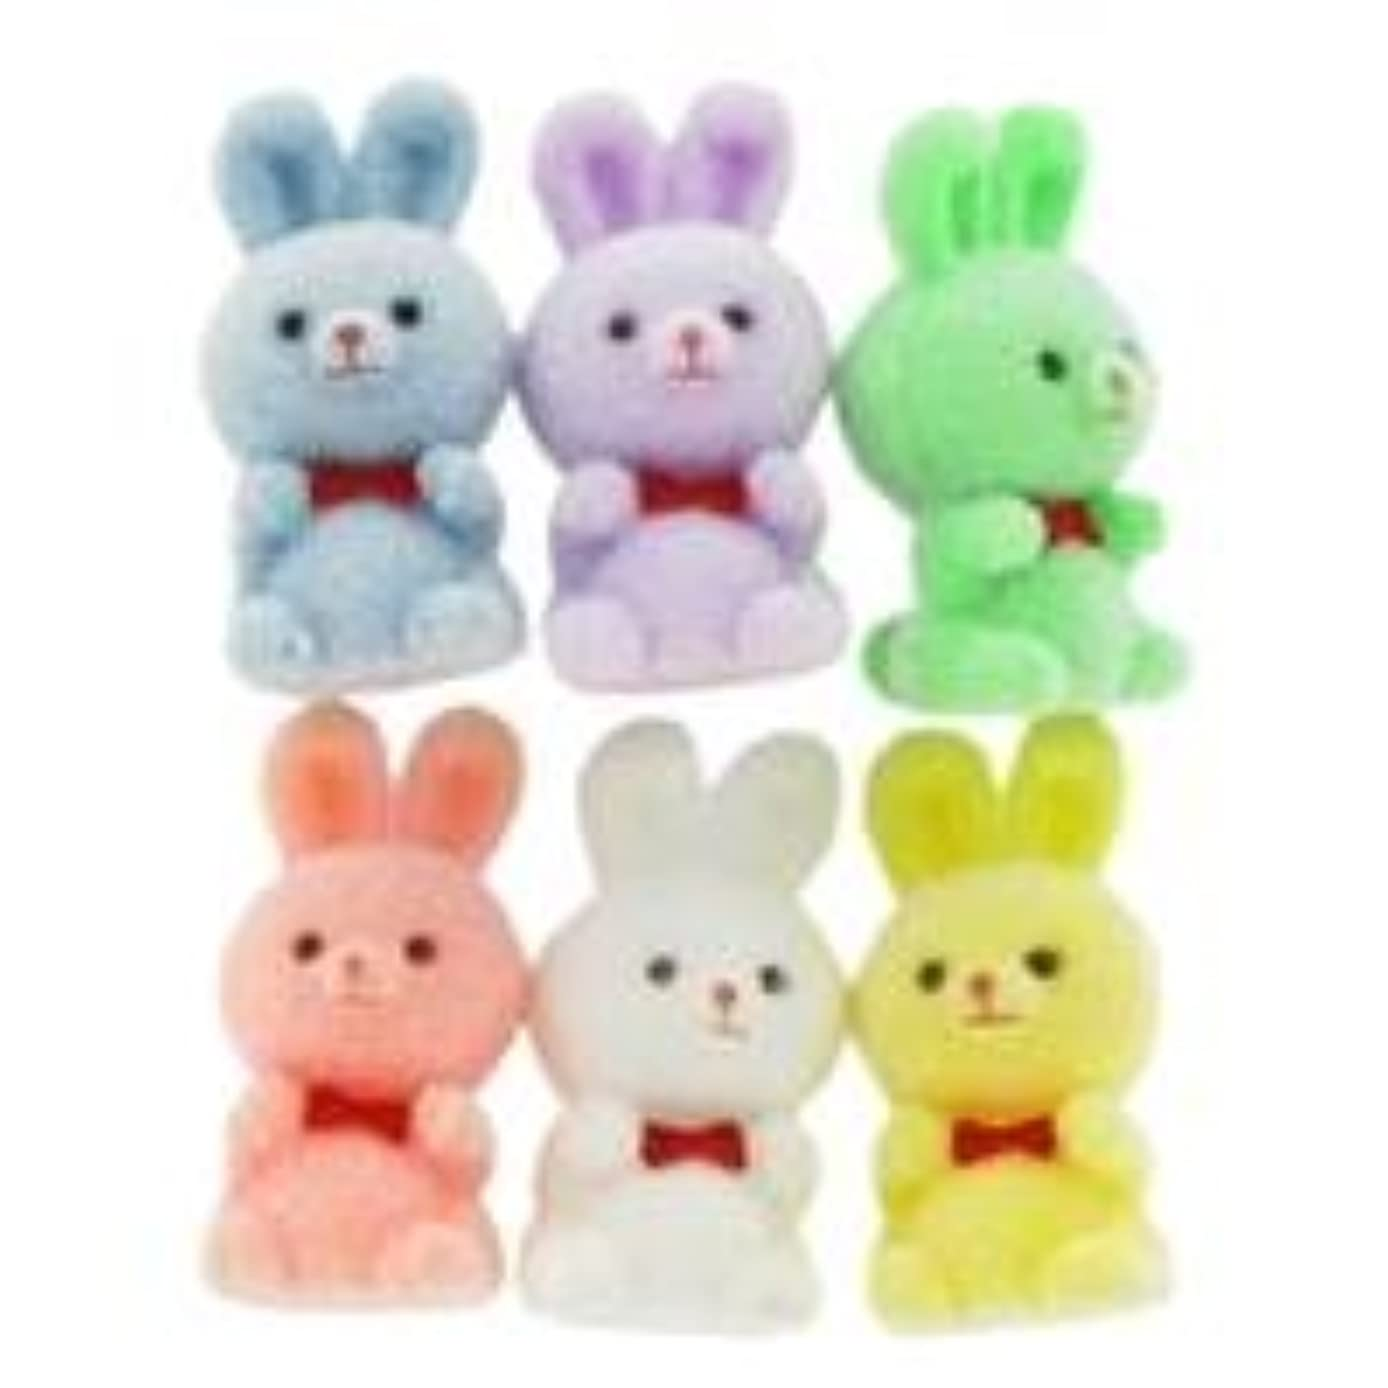 Pastel Miniature Flocked Bunnies with Curled Ears From TheCraftyCrocodile